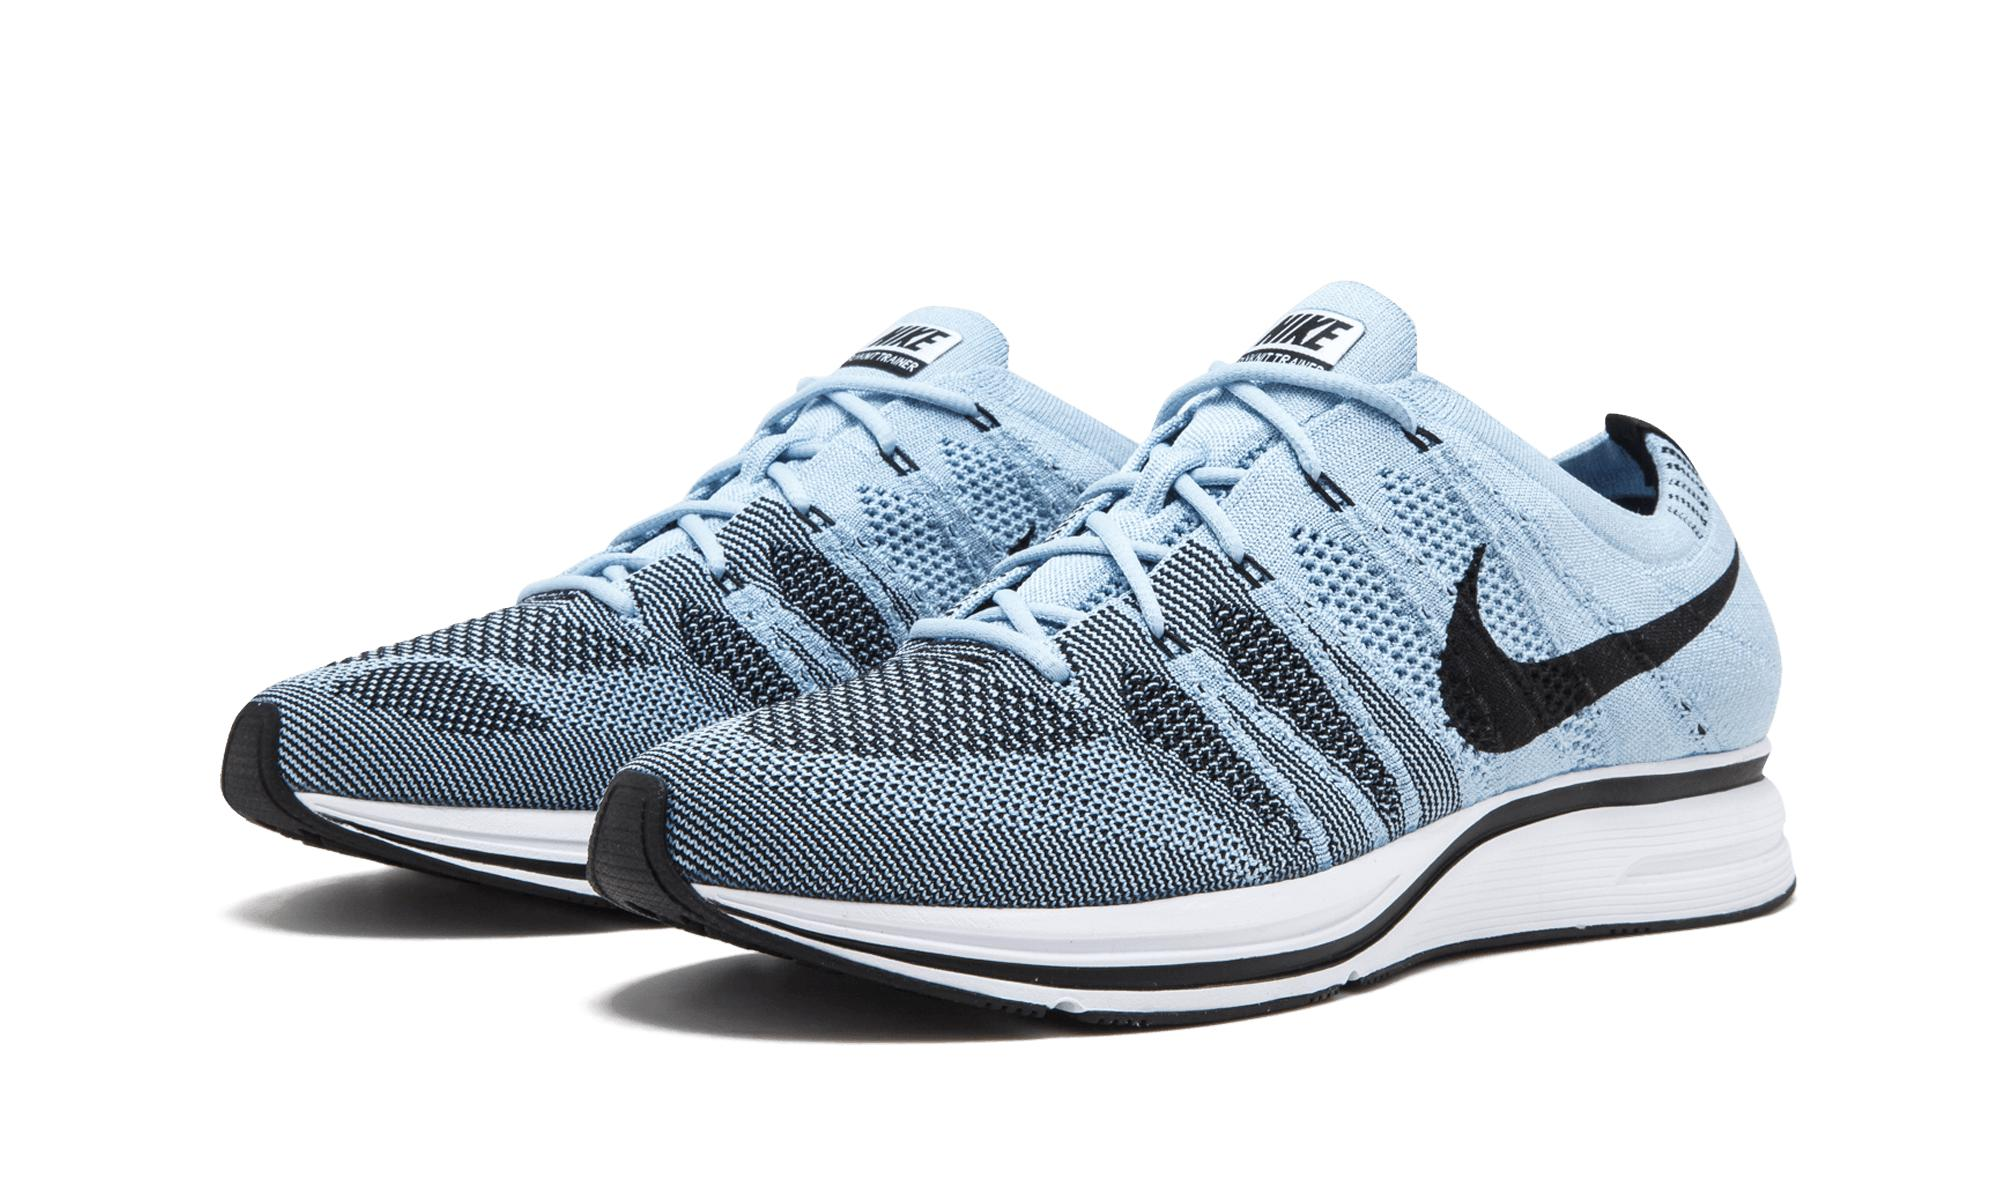 5ff086866cc86 Lyst - Nike Flyknit Trainer in Blue for Men - Save 54.54545454545455%